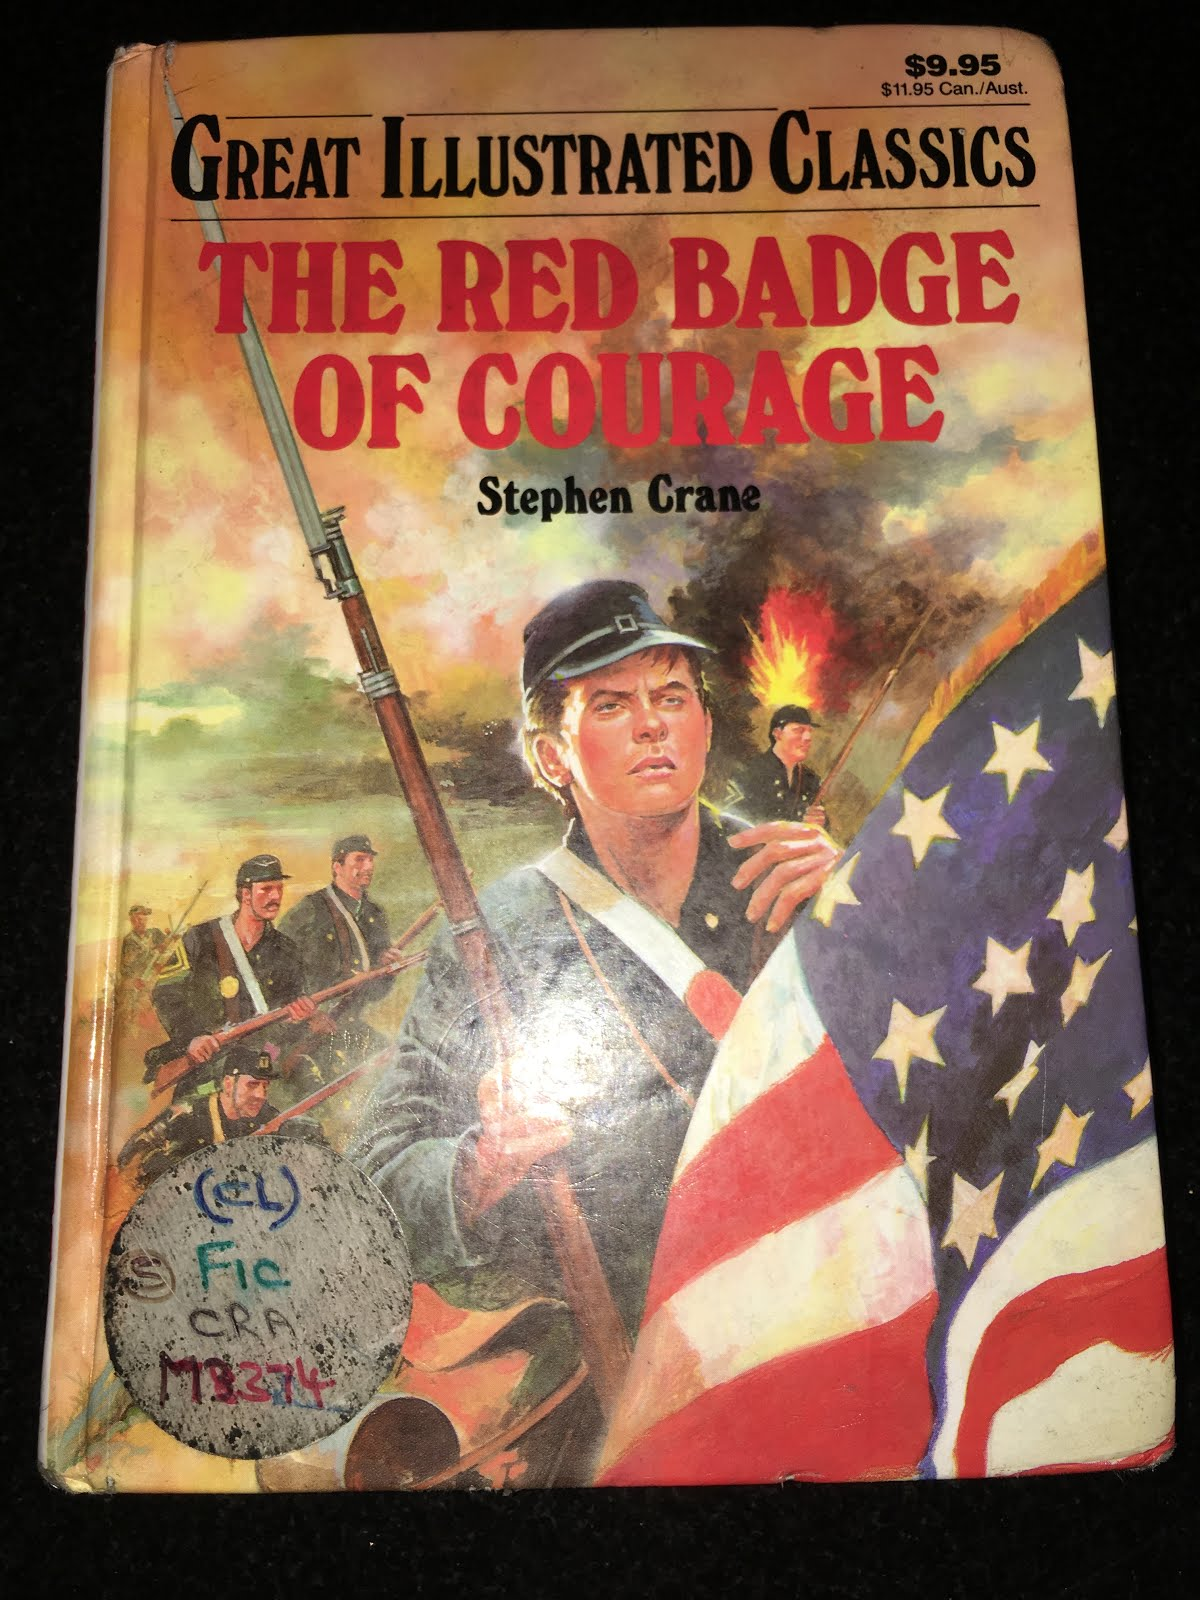 the true nature of war in the story of the red badge of courage by stephen crane Buy, download and read the red badge of courage ebook online in epub format for iphone, ipad, android, computer and mobile readers author: stephen crane isbn: 9781443432214.